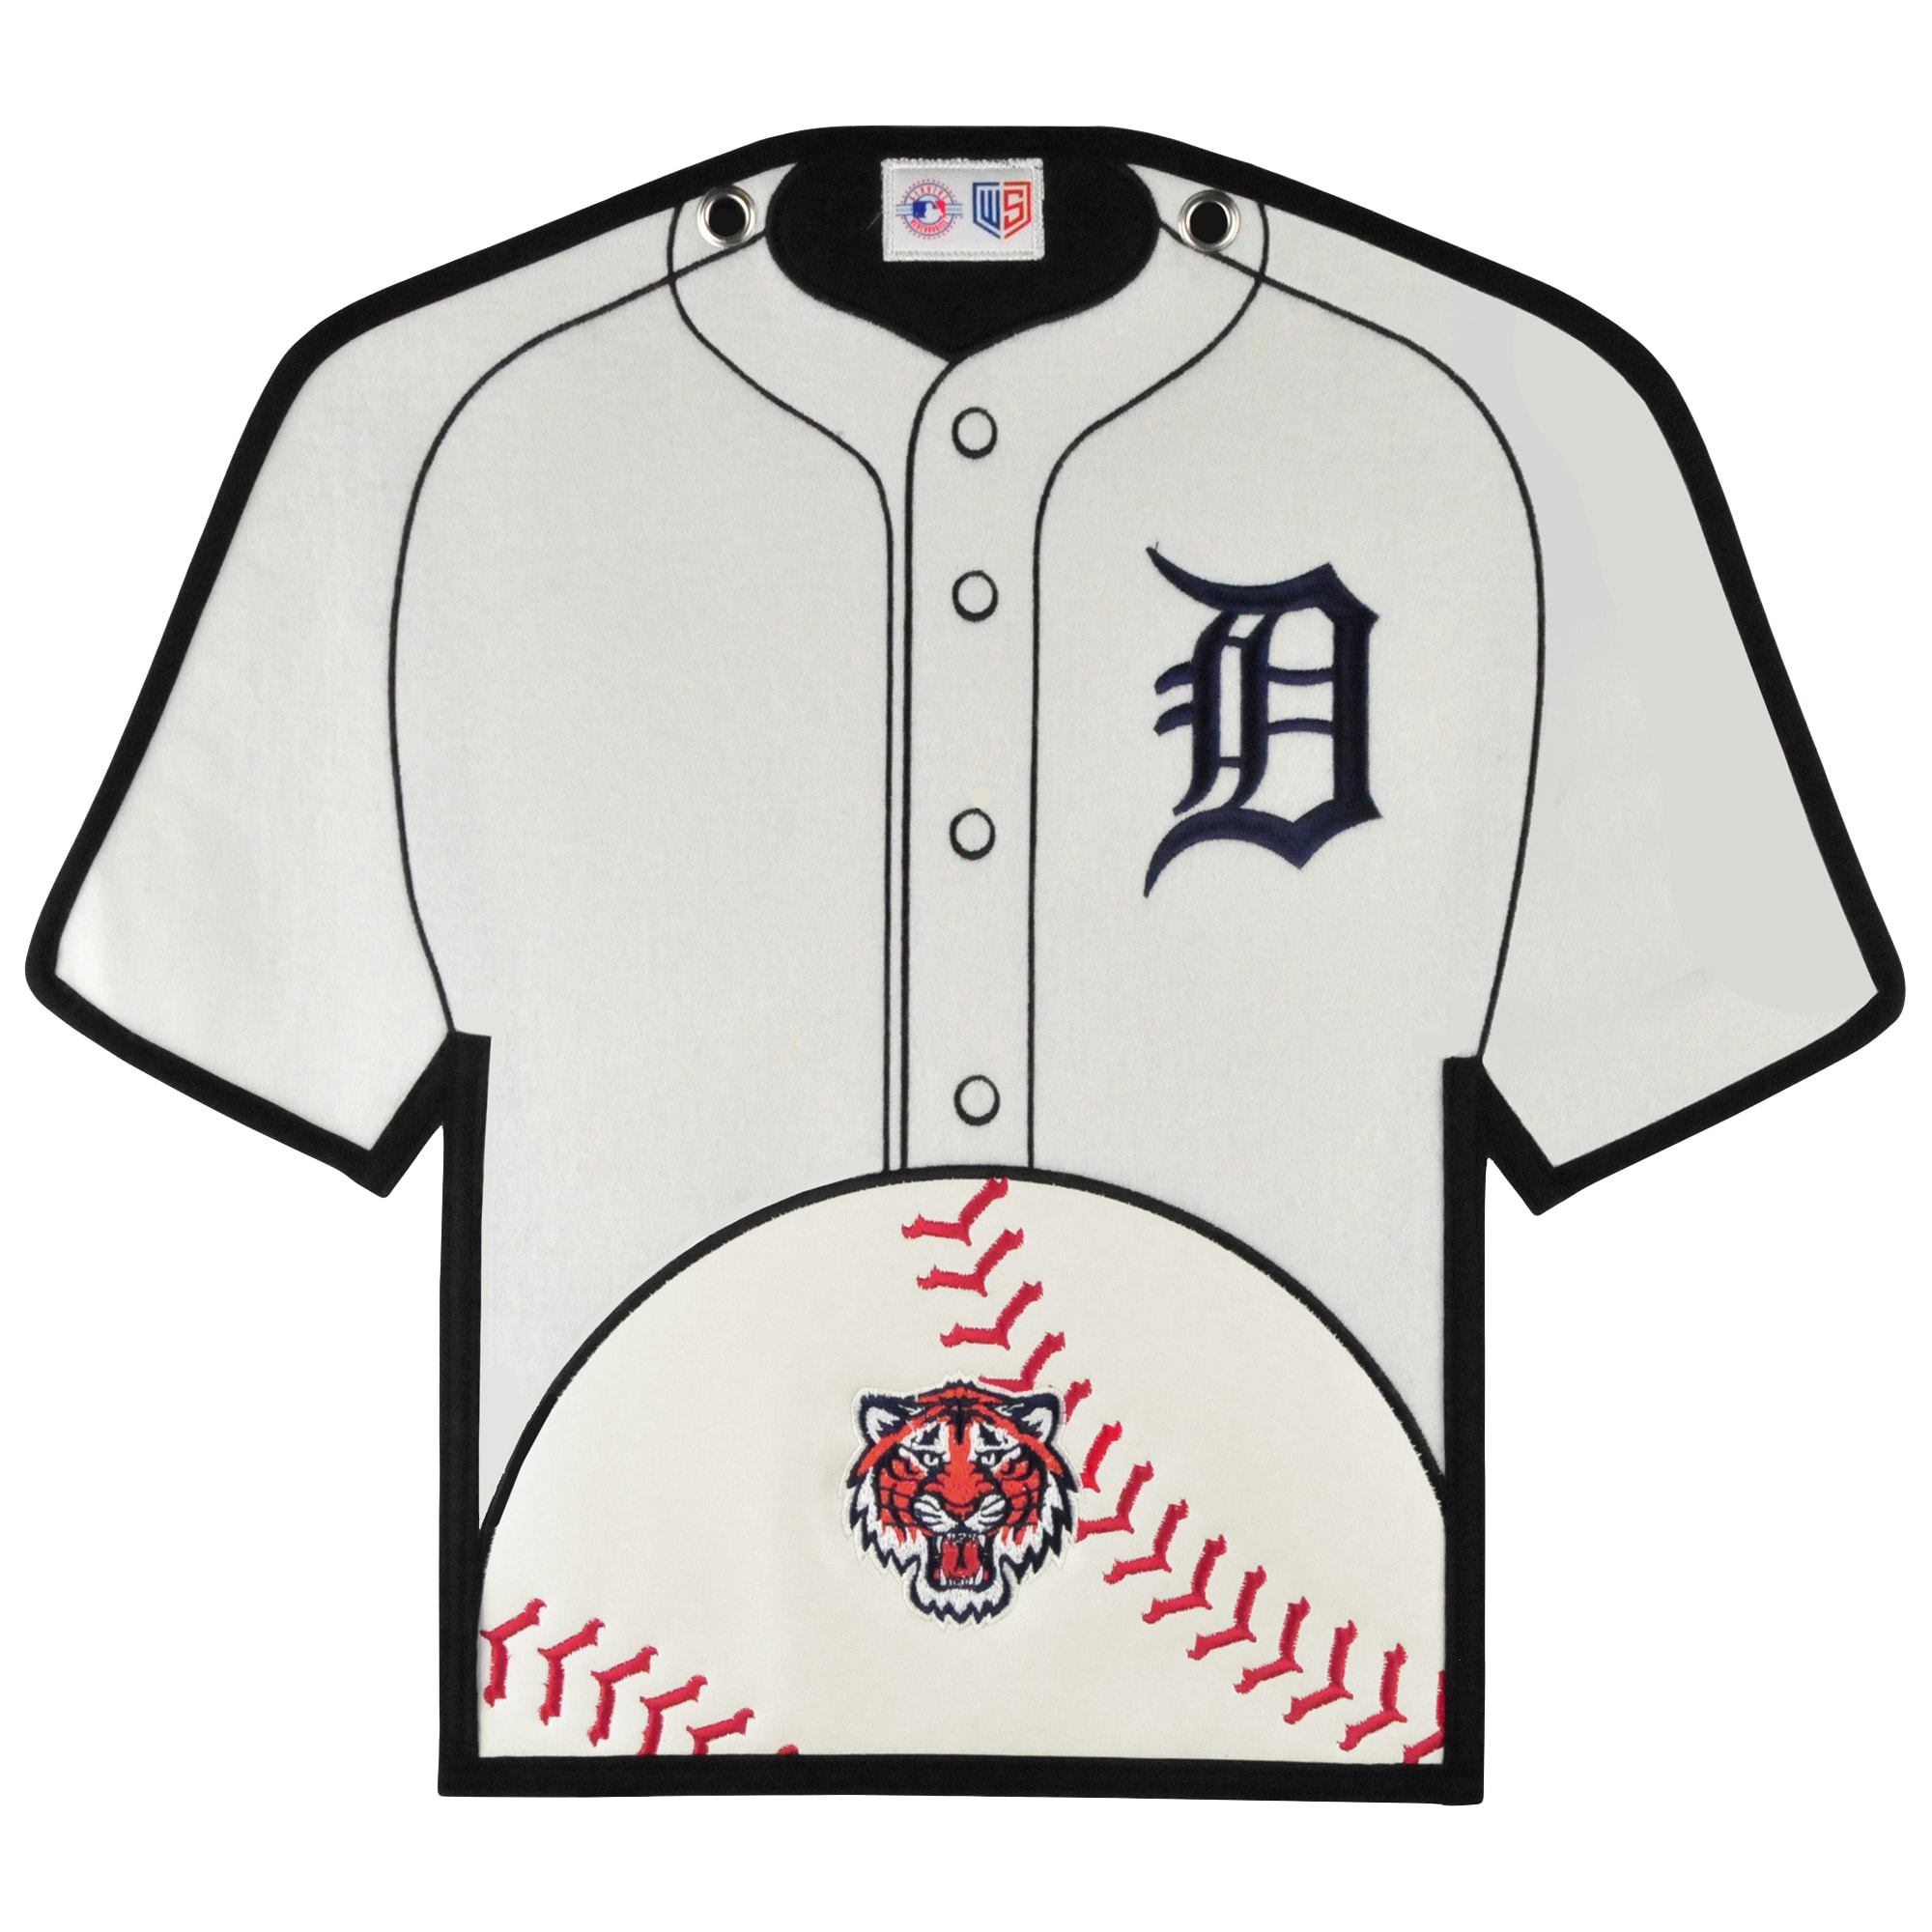 Detroit Tigers 14'' x 22'' Jersey Traditions Banner - White/Navy